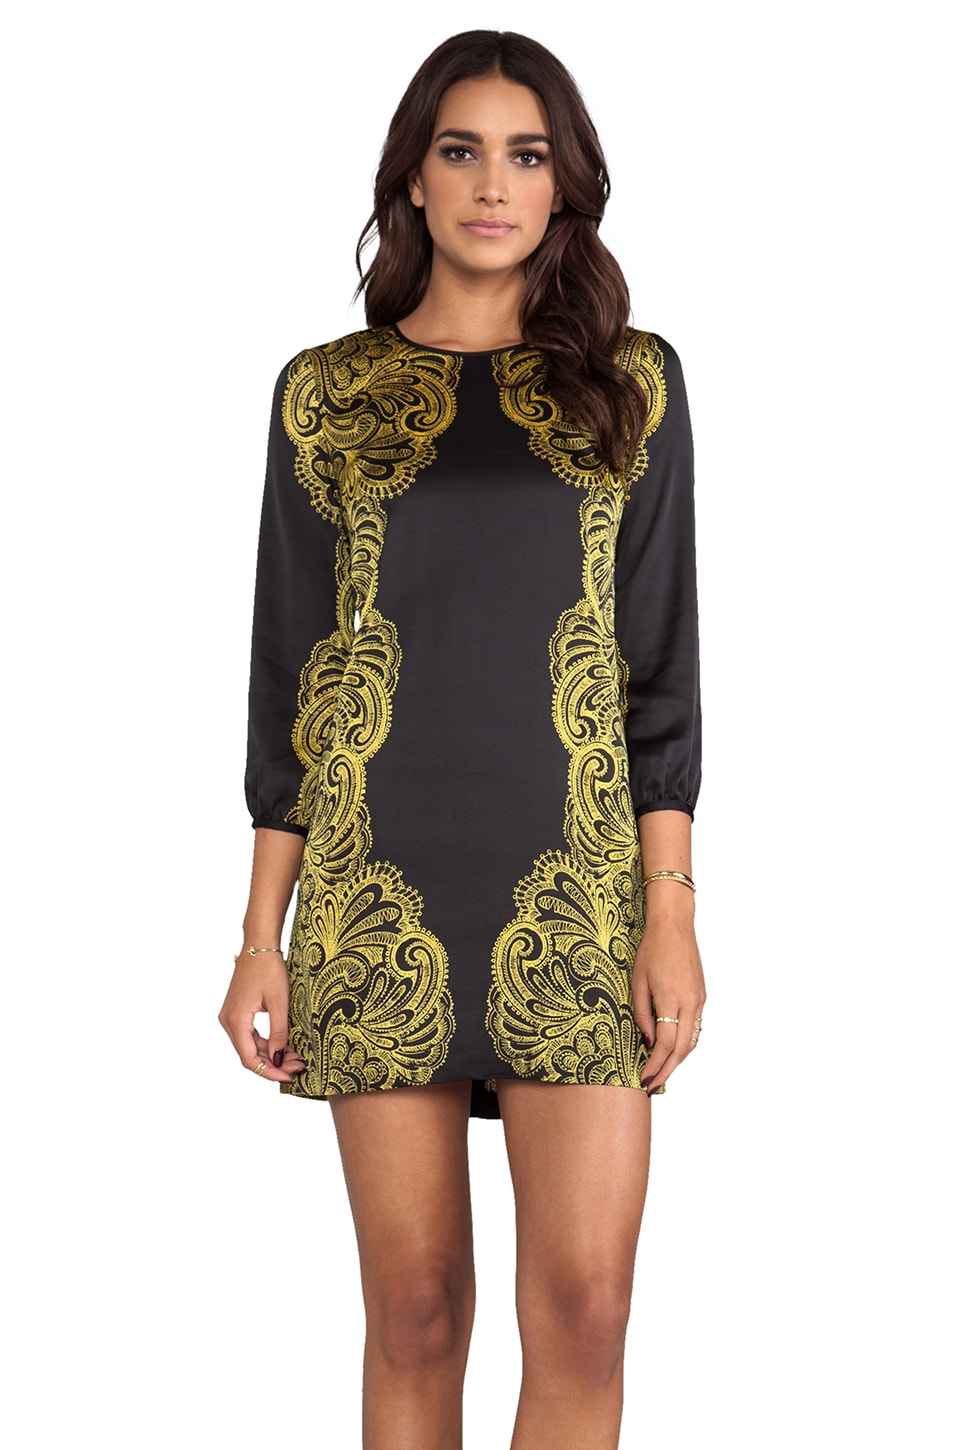 Juicy Couture Bohemian Paisley Dress in Pitch Black